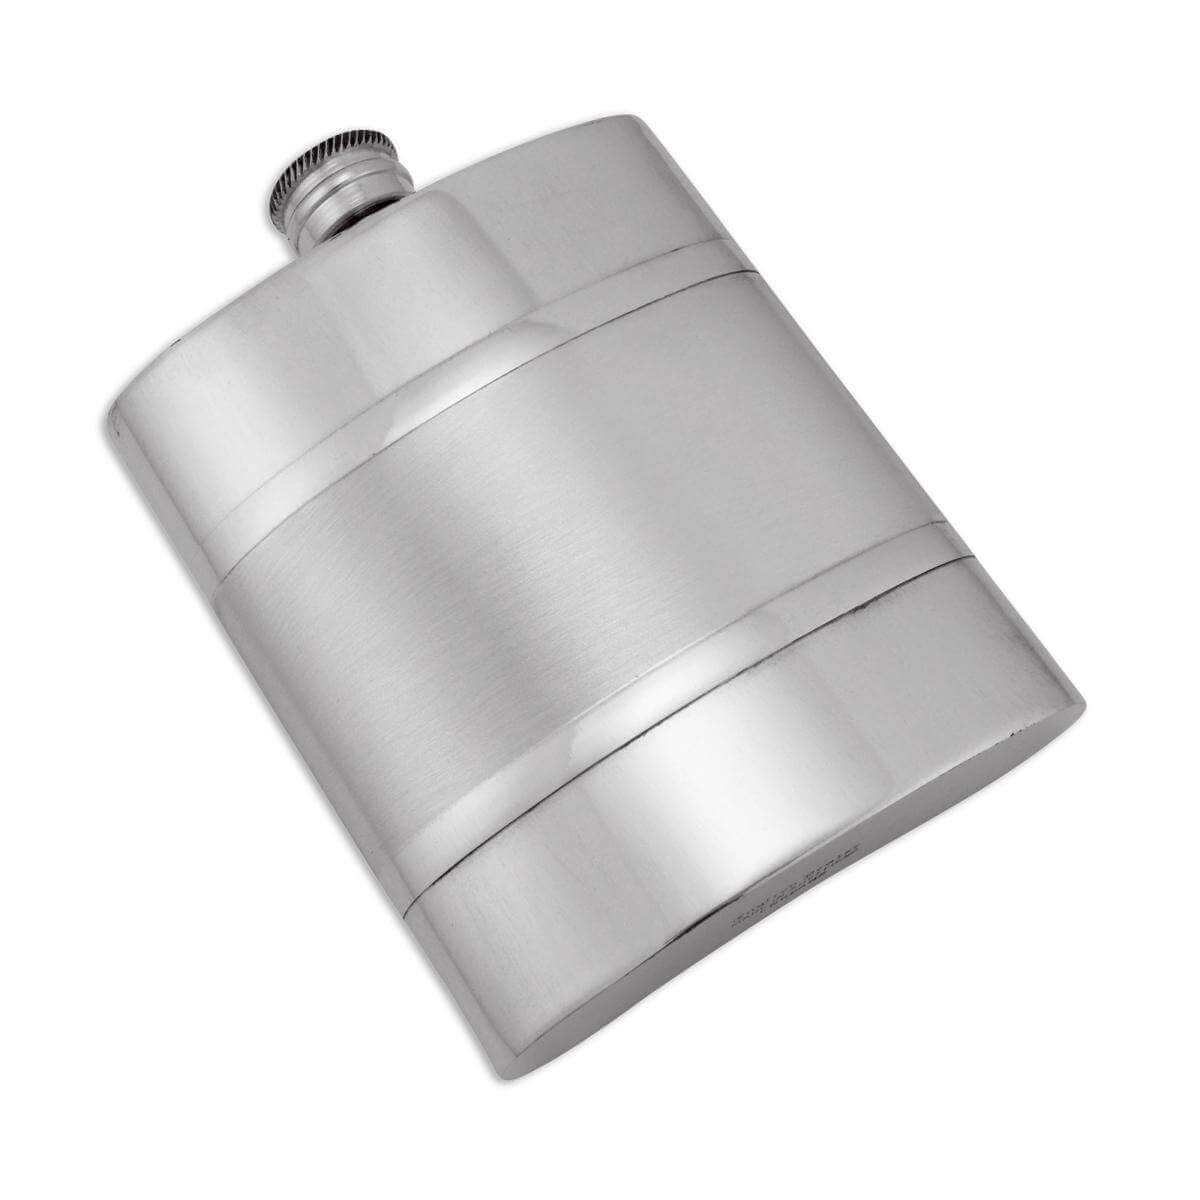 6oz Handmade Pewter Hip Flask with Satin Band